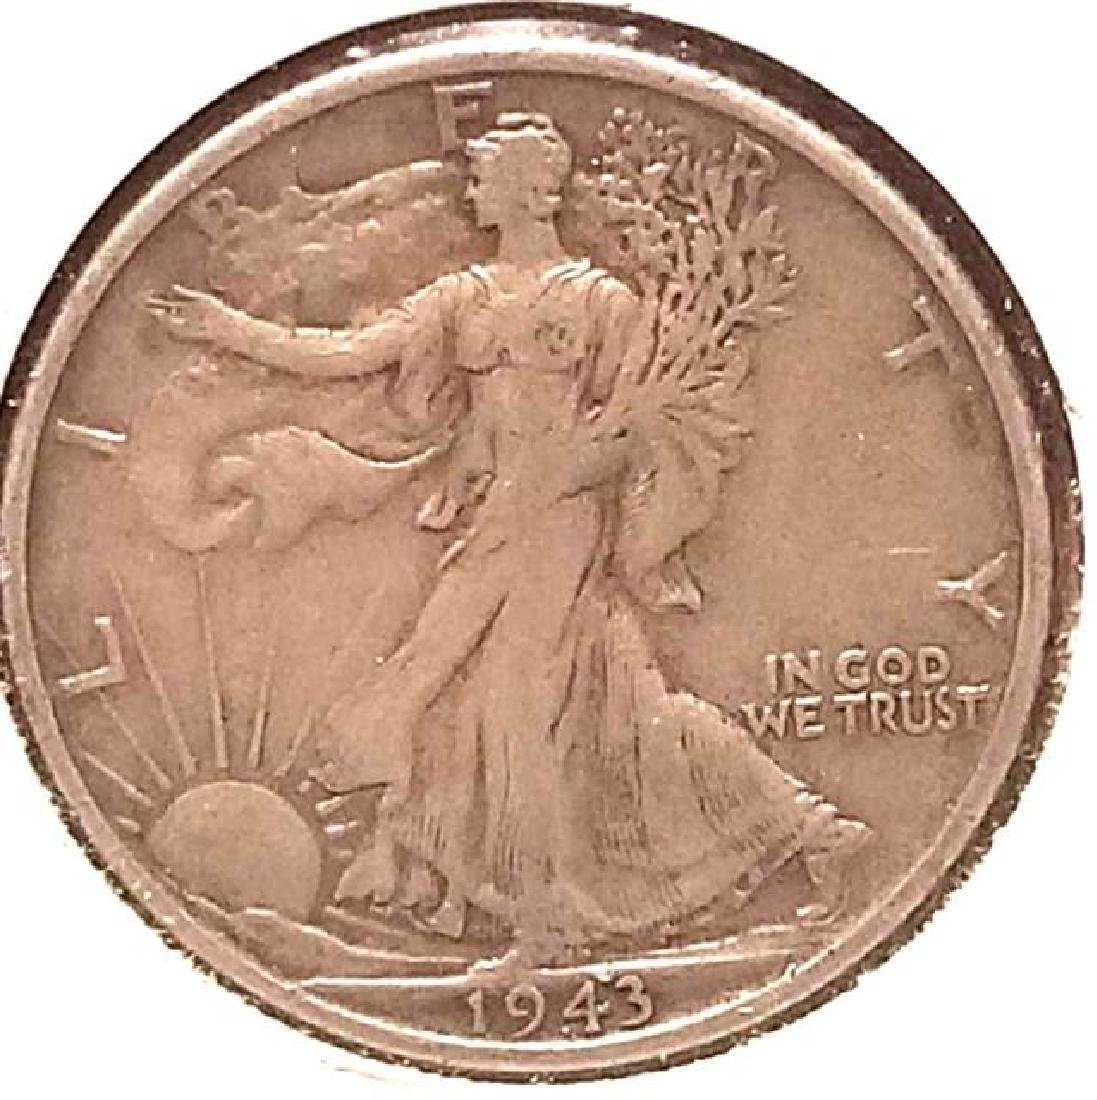 THREE (3) PIECES OF 1943-S WALKING LIBERTY - 3